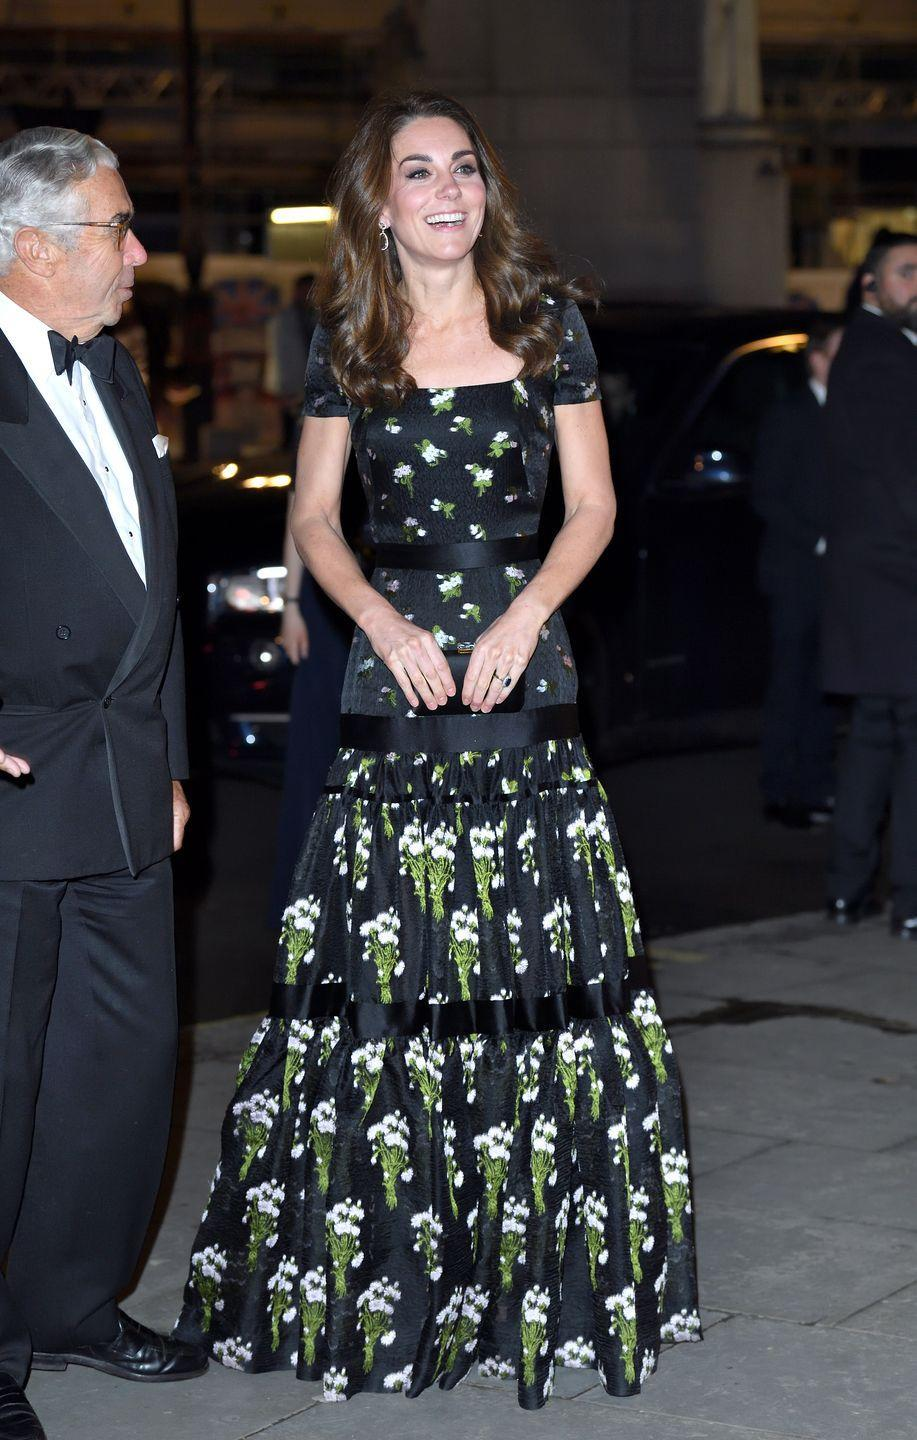 """<p>When Kate Middleton stepped out at the Royal Portrait Gallery in 2019, the media praised her repeat ensemble, which she wore in a strapless style in 2017. But a few eagle-eyed fans <a href=""""https://www.marieclaire.com/fashion/a26802161/kate-middleton-alexander-mcqueen-dress-national-portrait-gallery/"""" rel=""""nofollow noopener"""" target=""""_blank"""" data-ylk=""""slk:pointed out the tailoring seemed different"""" class=""""link rapid-noclick-resp"""">pointed out the tailoring seemed different</a>, and it was possible the Duchess had two of the same dresses in different styles. It was never confirmed, but it caused a flurry online. </p>"""